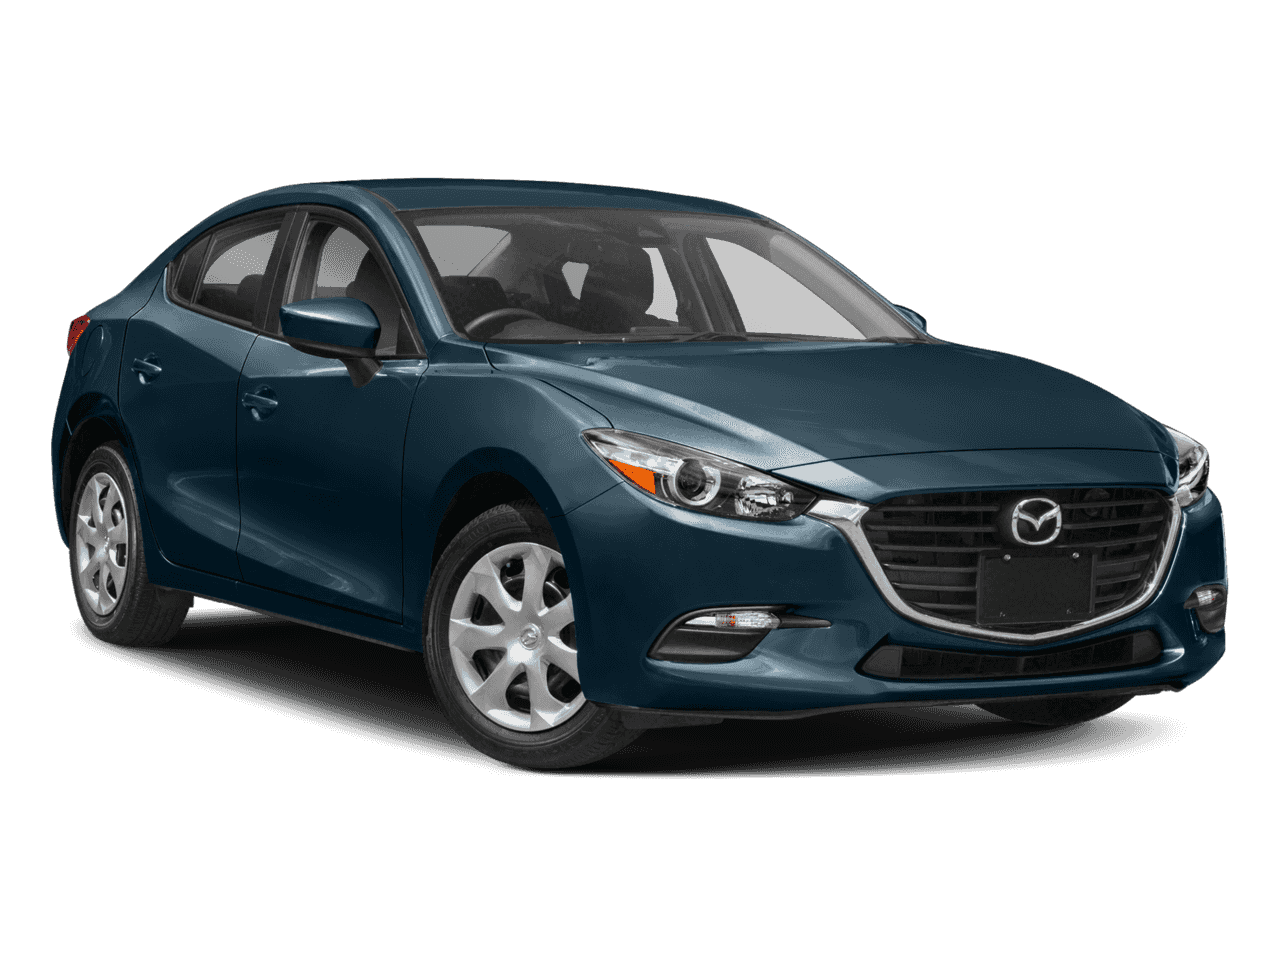 Mazda 3 Owners Manual: Identification Numbers